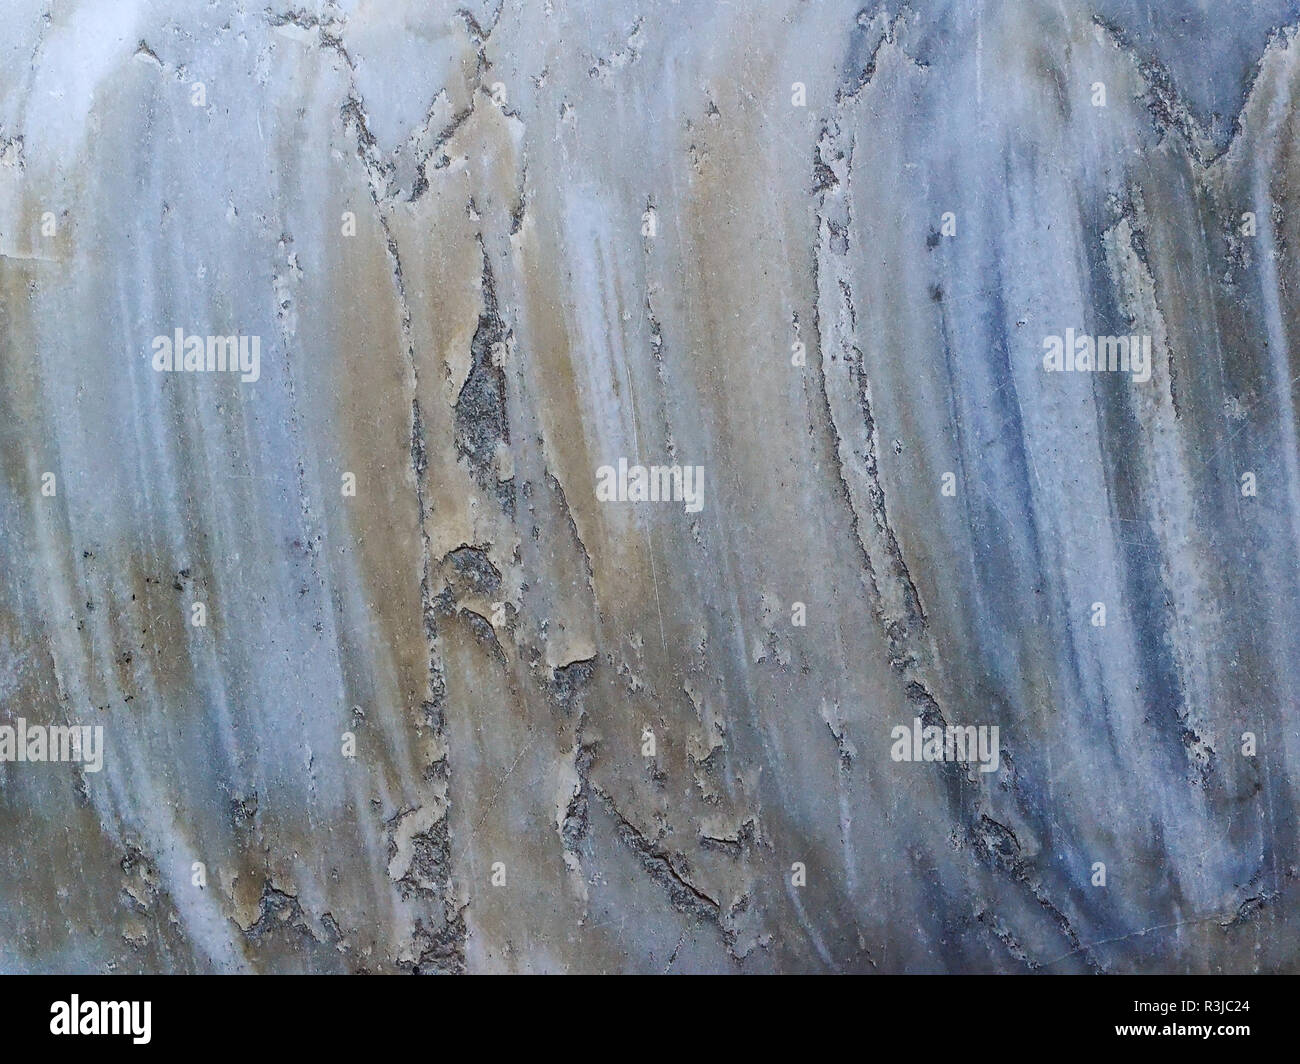 Natural Stone texture for design, Scratched marbled brindle color. - Stock Image